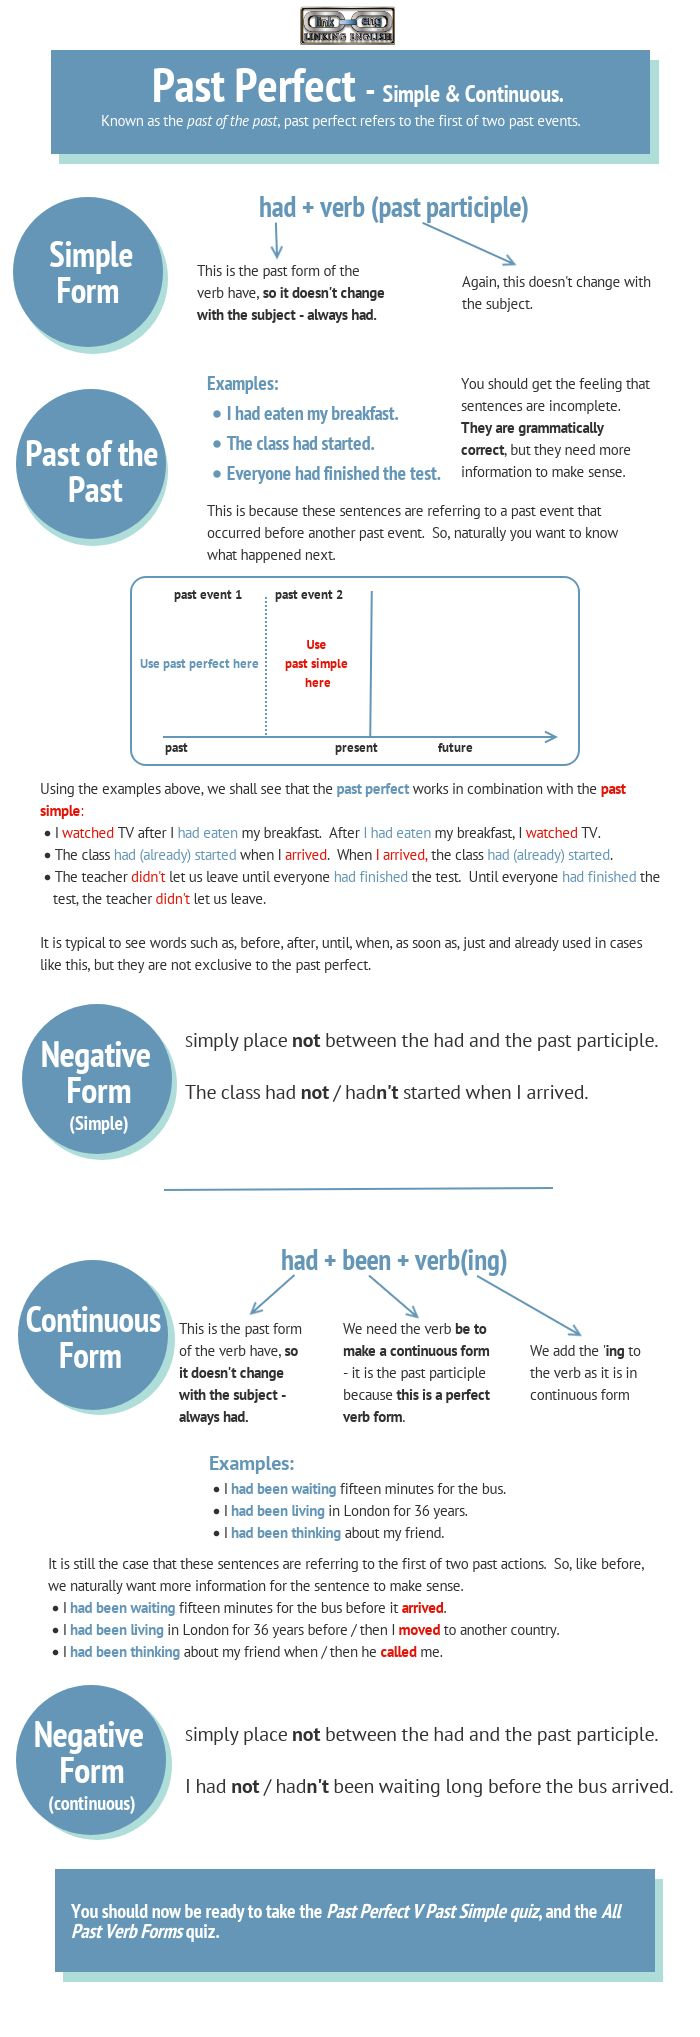 Past Perfect - Simple & Continuous.jpg